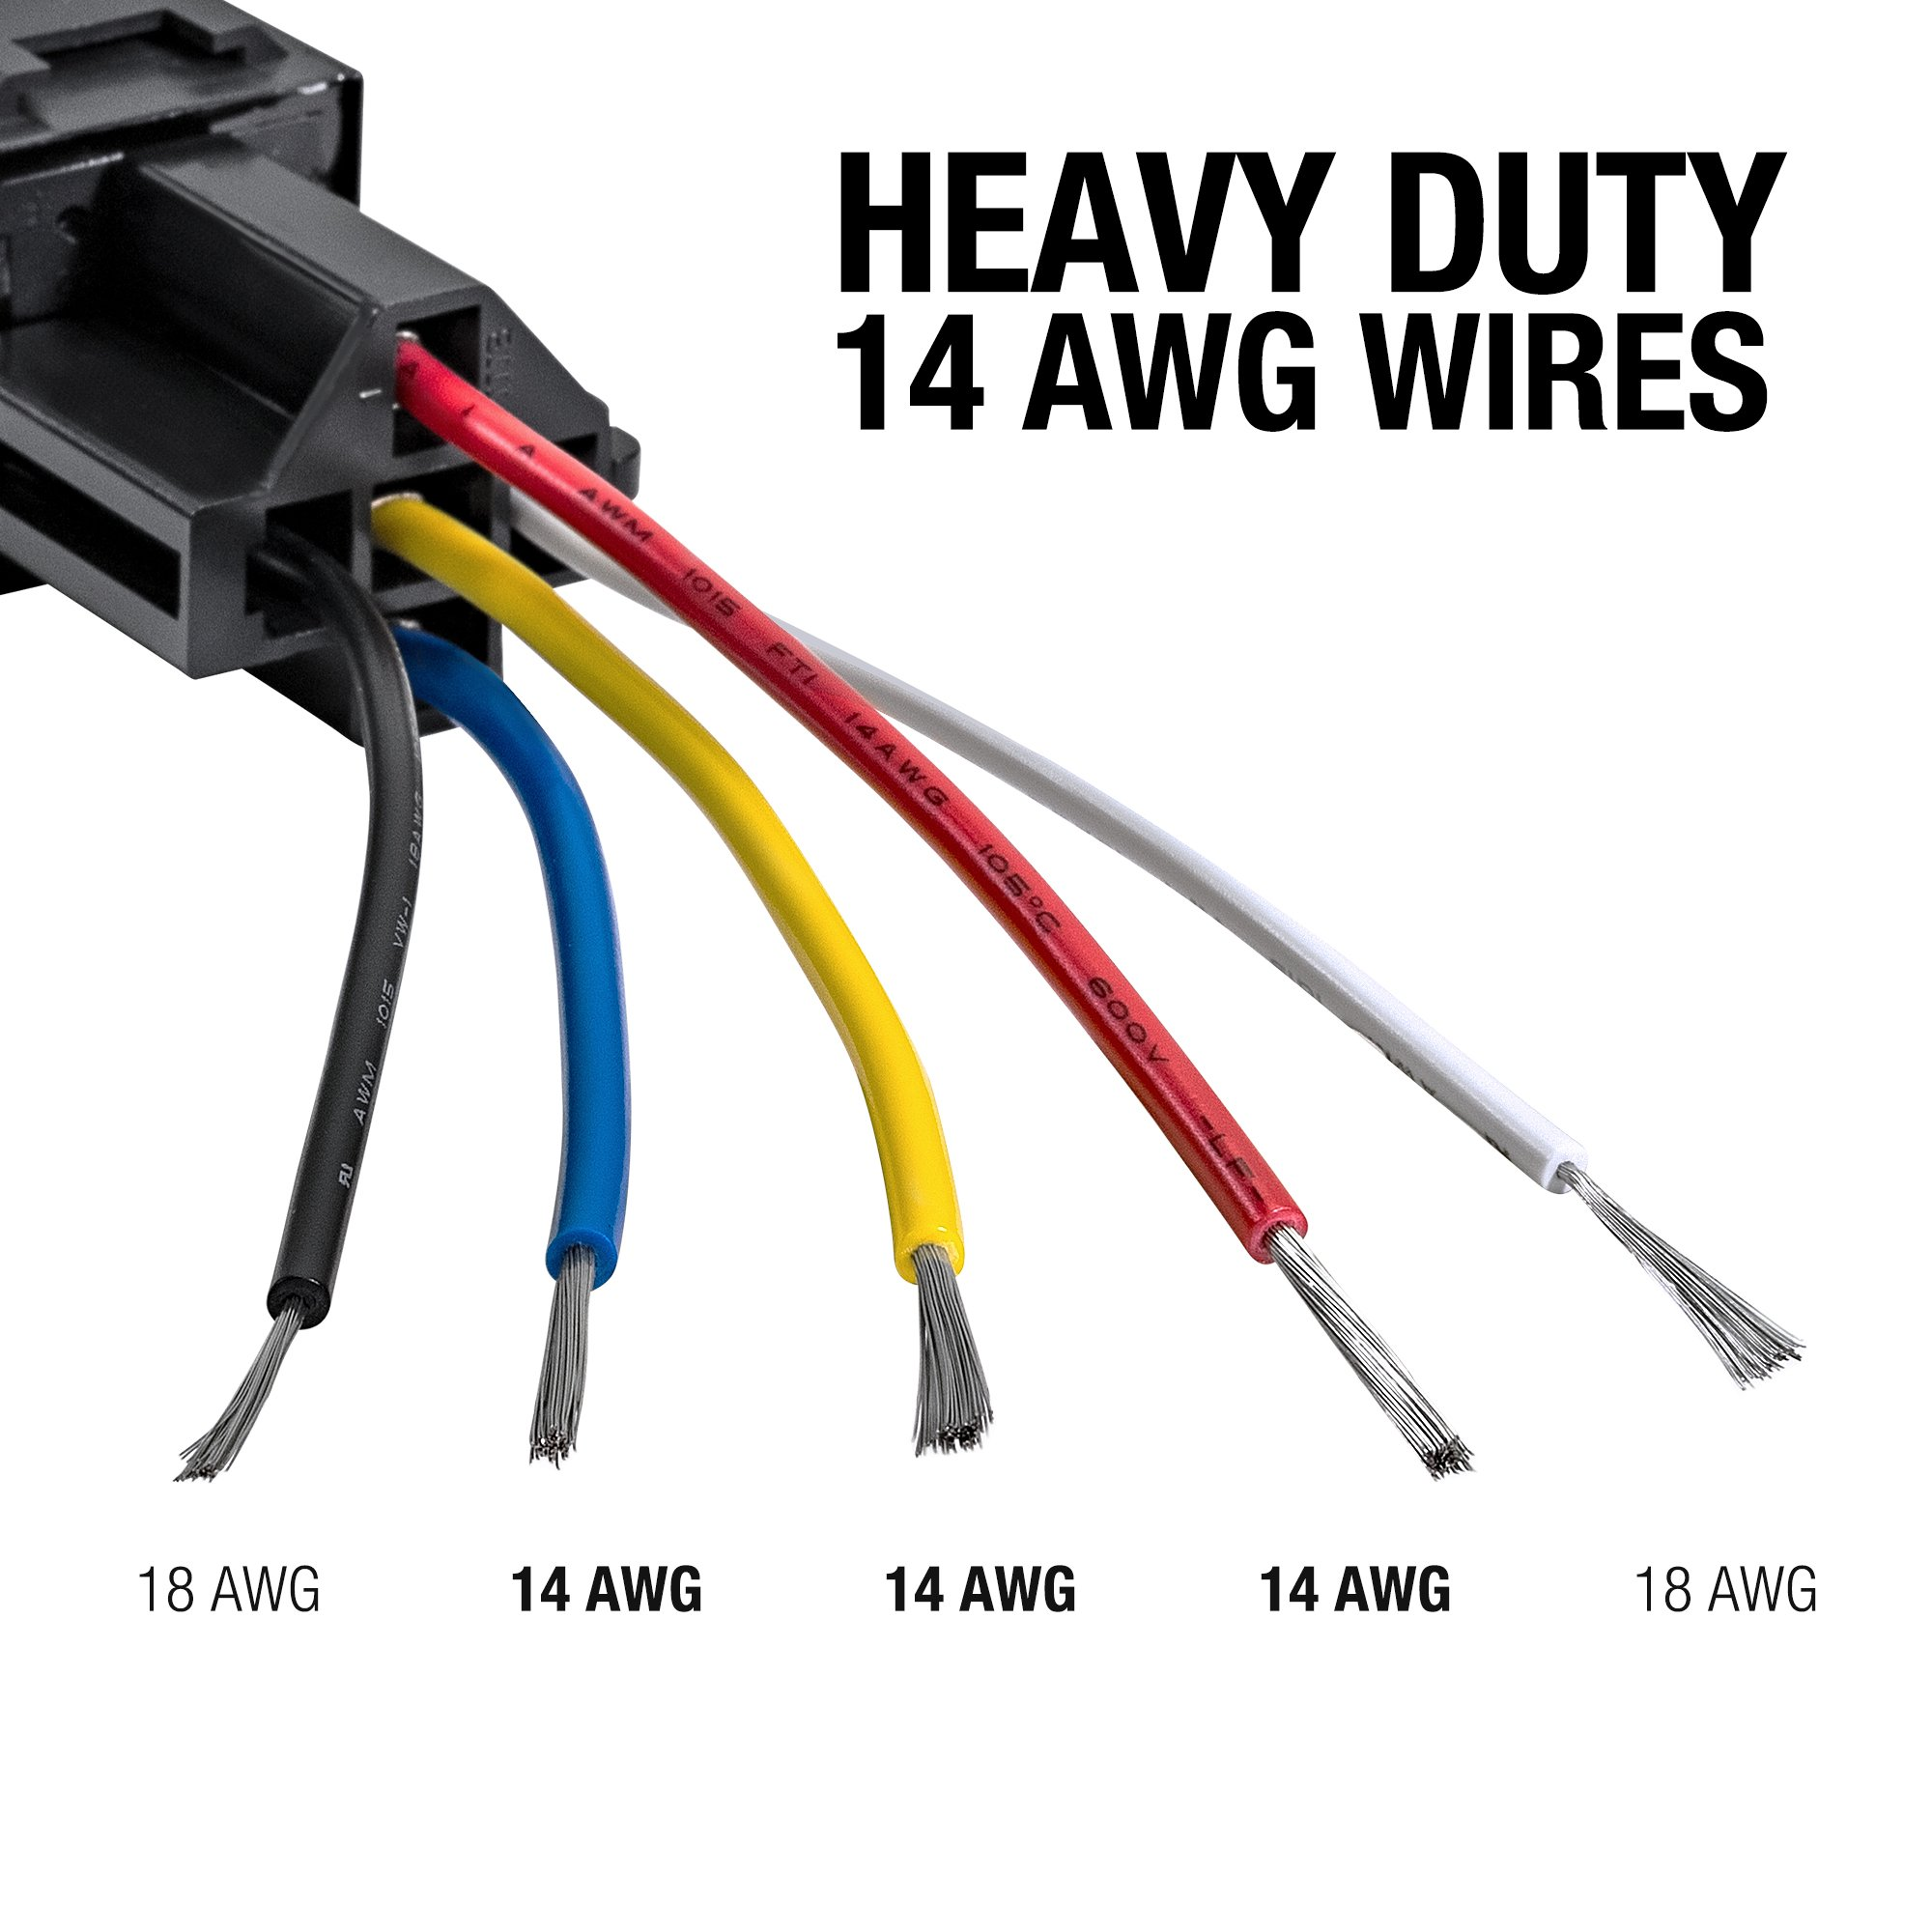 Online Led Store 6 Pack 12v Dc 40 30 Amp 5 Pin Spdt Automotive Bosch Wire Harness Relay Set Style With Interlocking Harnesses Pszacceps175r Starter